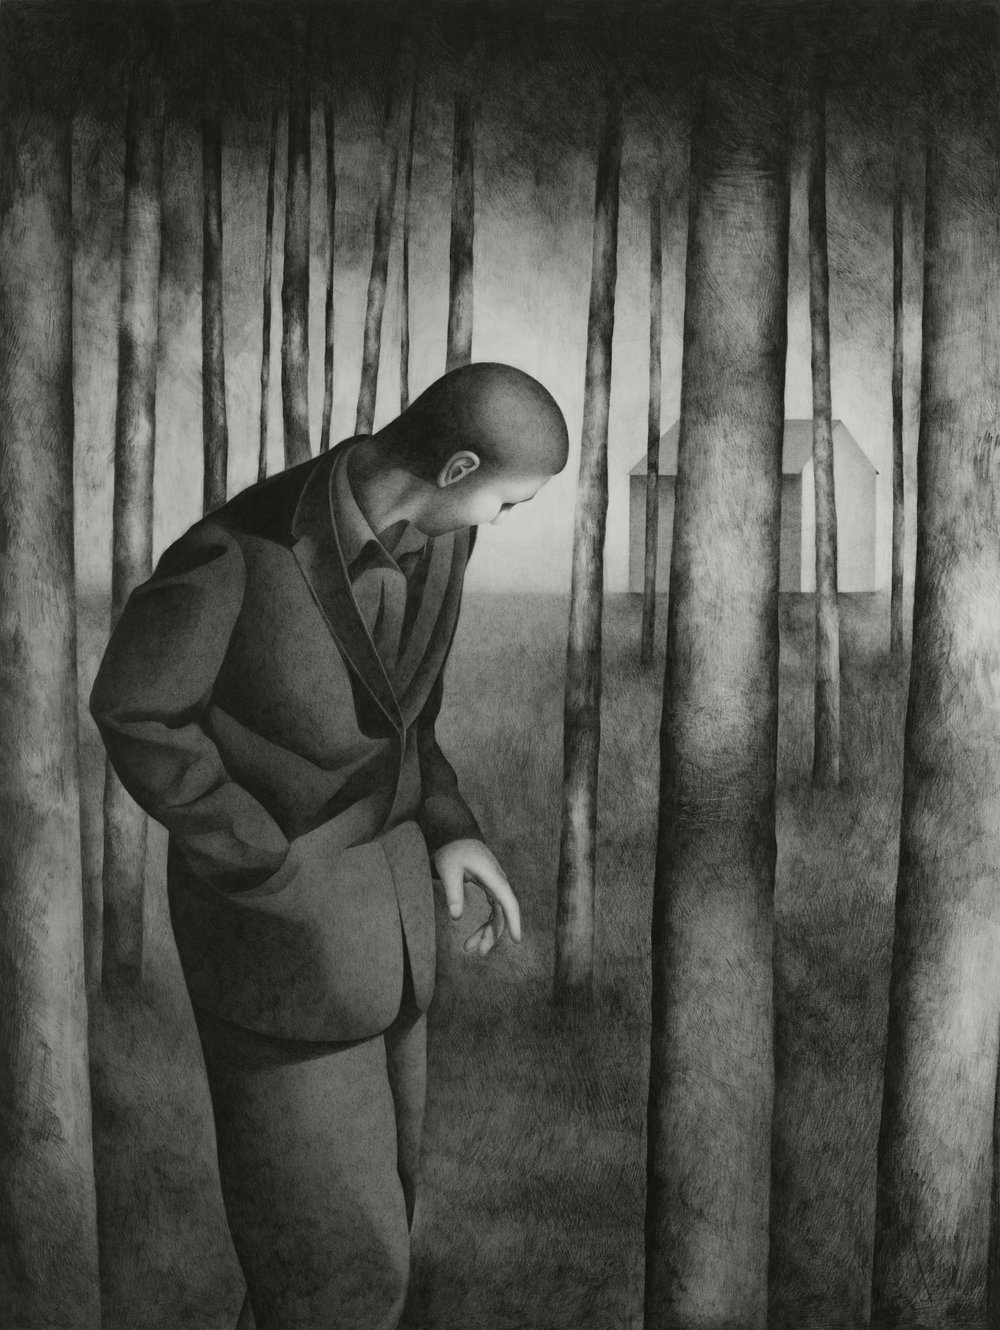 Paul Hogg, Man Walking in a Wood, Pencil on paper, 79cmcmx60cm,  http://paul-hogg.com